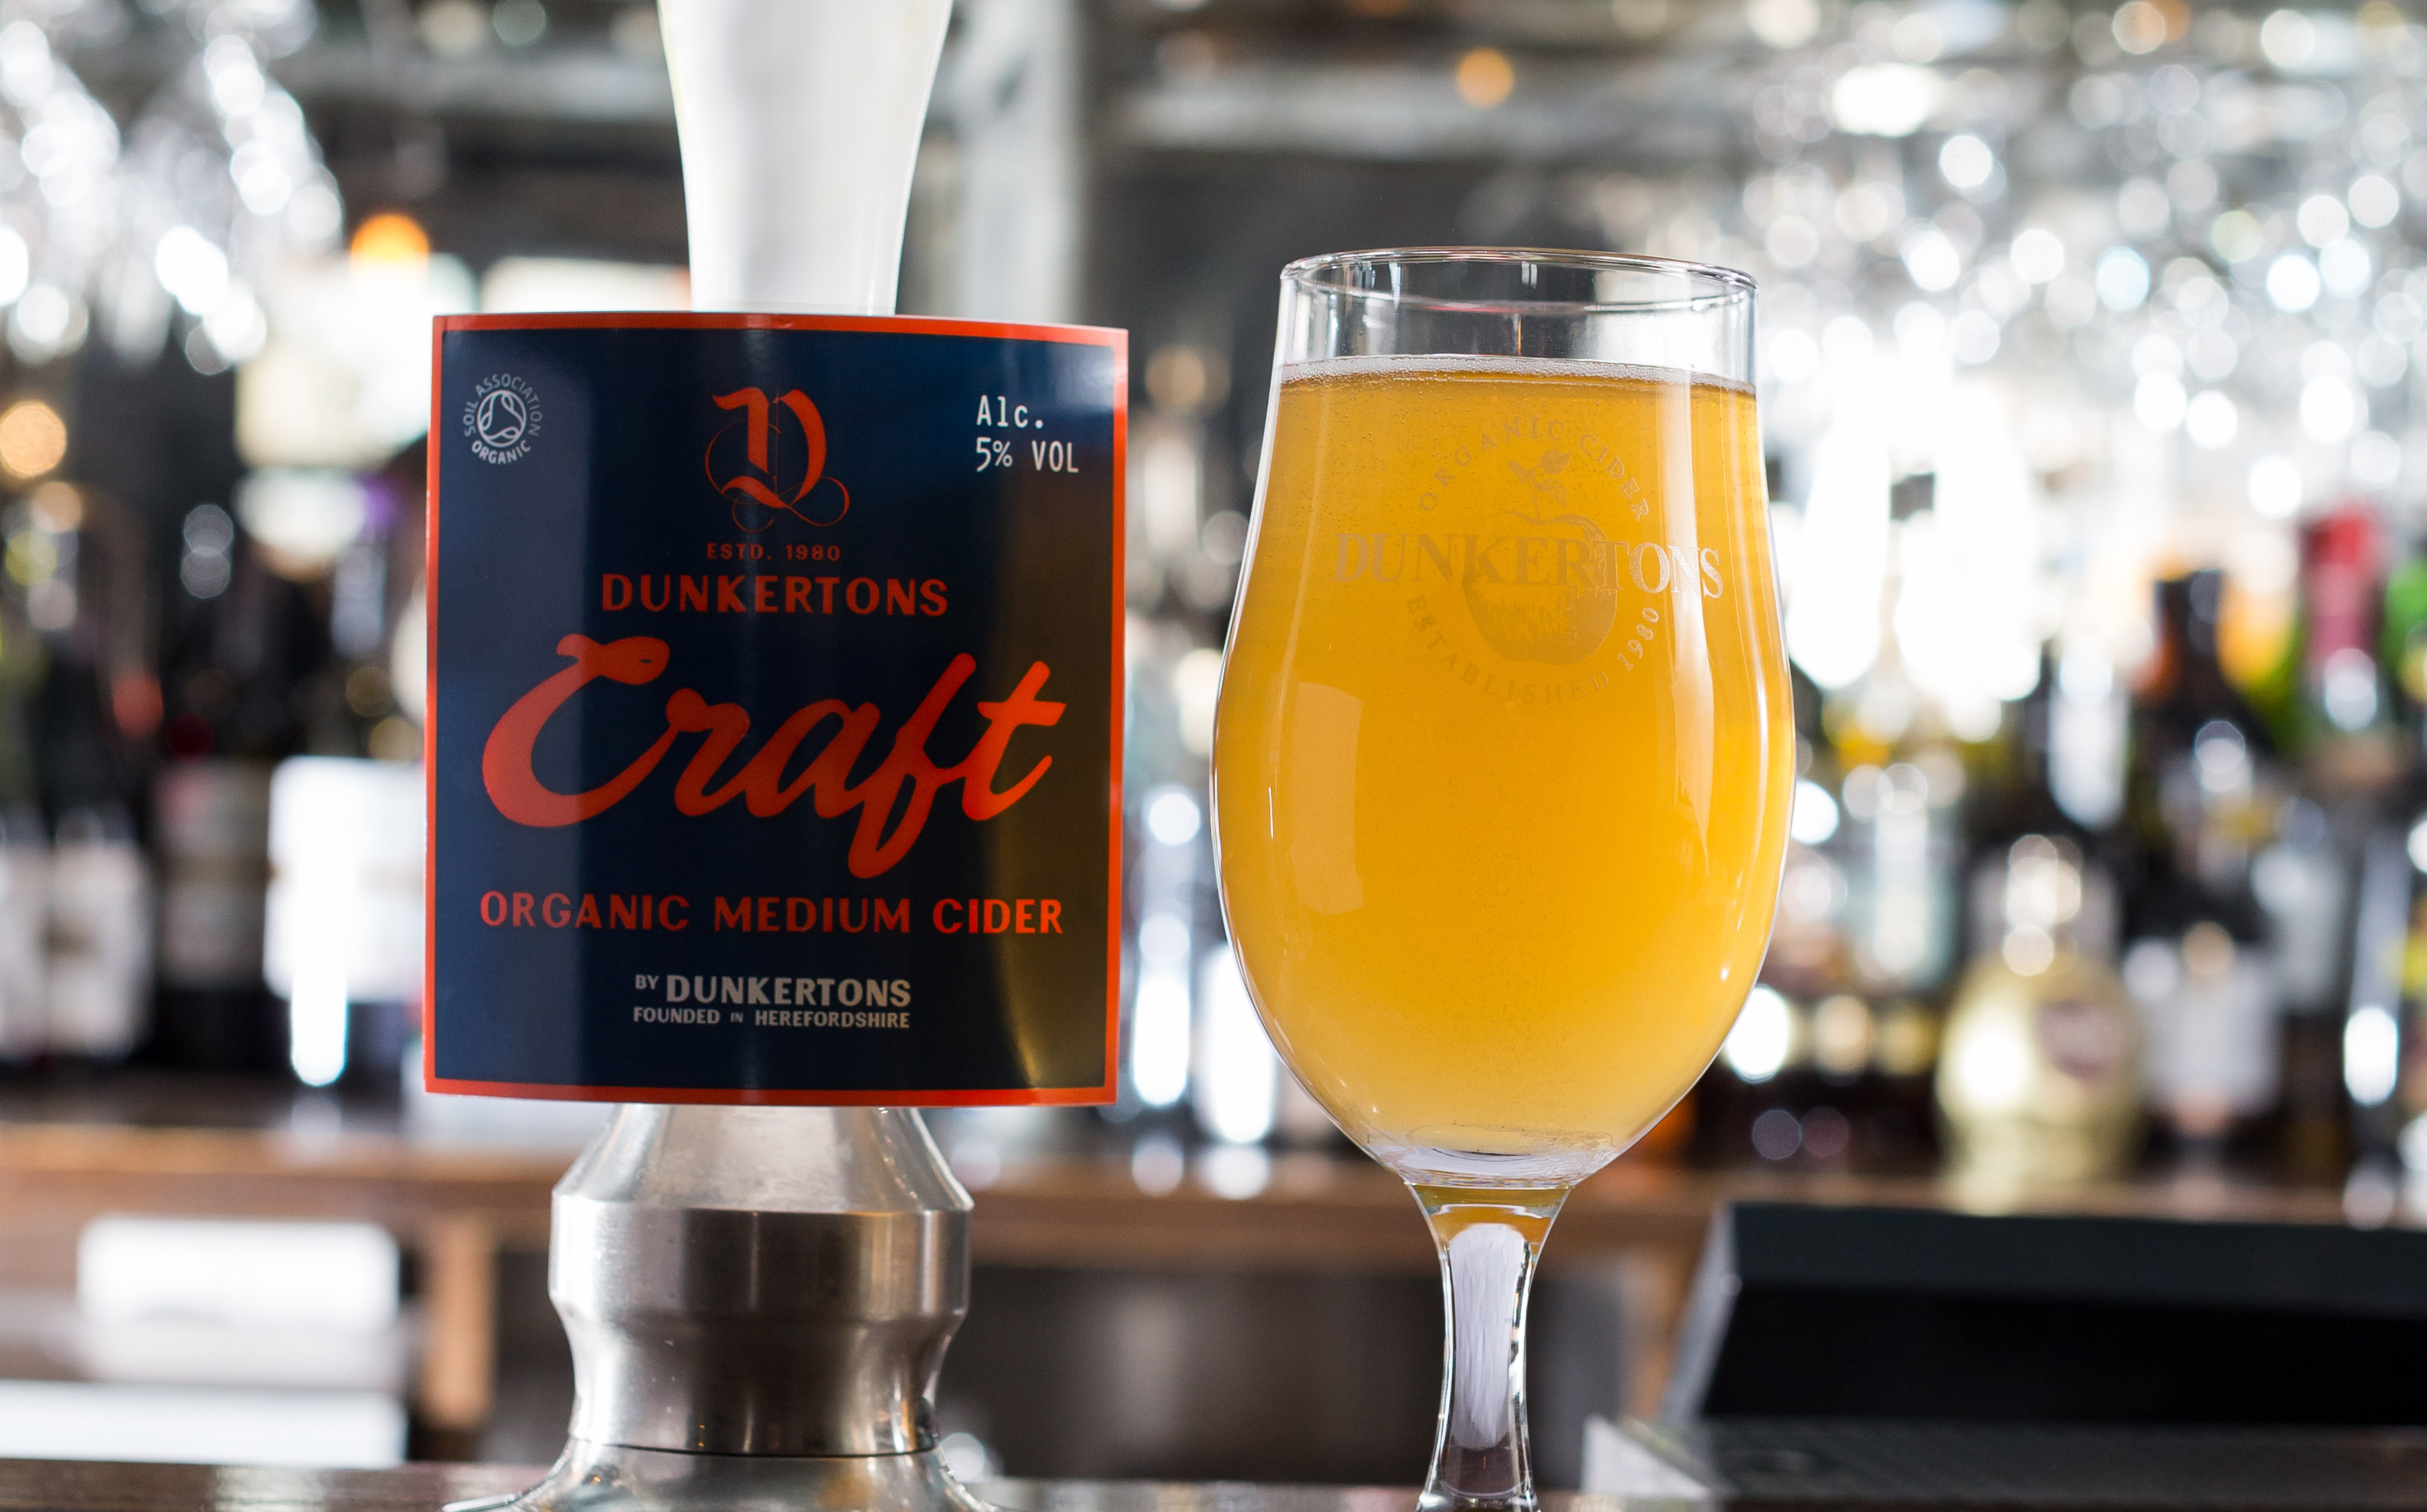 UK Cidery Dunkertons launches new organic Craft cider